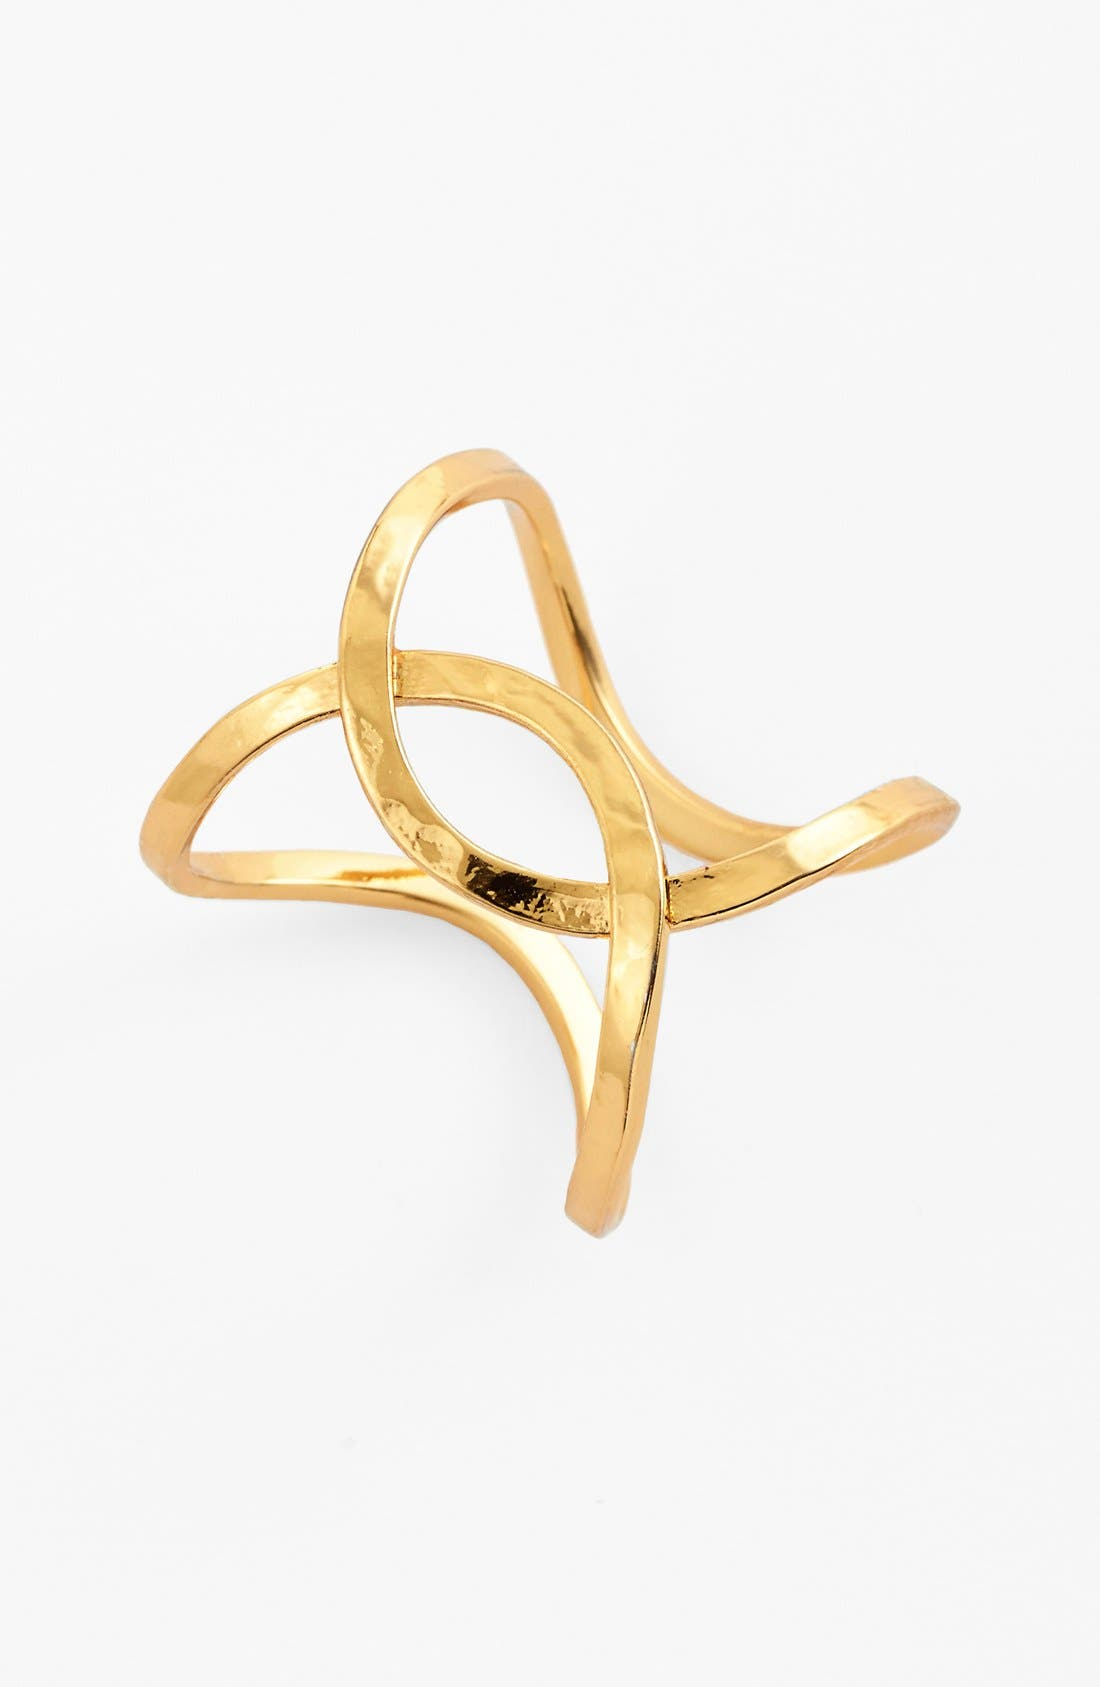 Alternate Image 1 Selected - gorjana 'Taner' Interlocking Ring